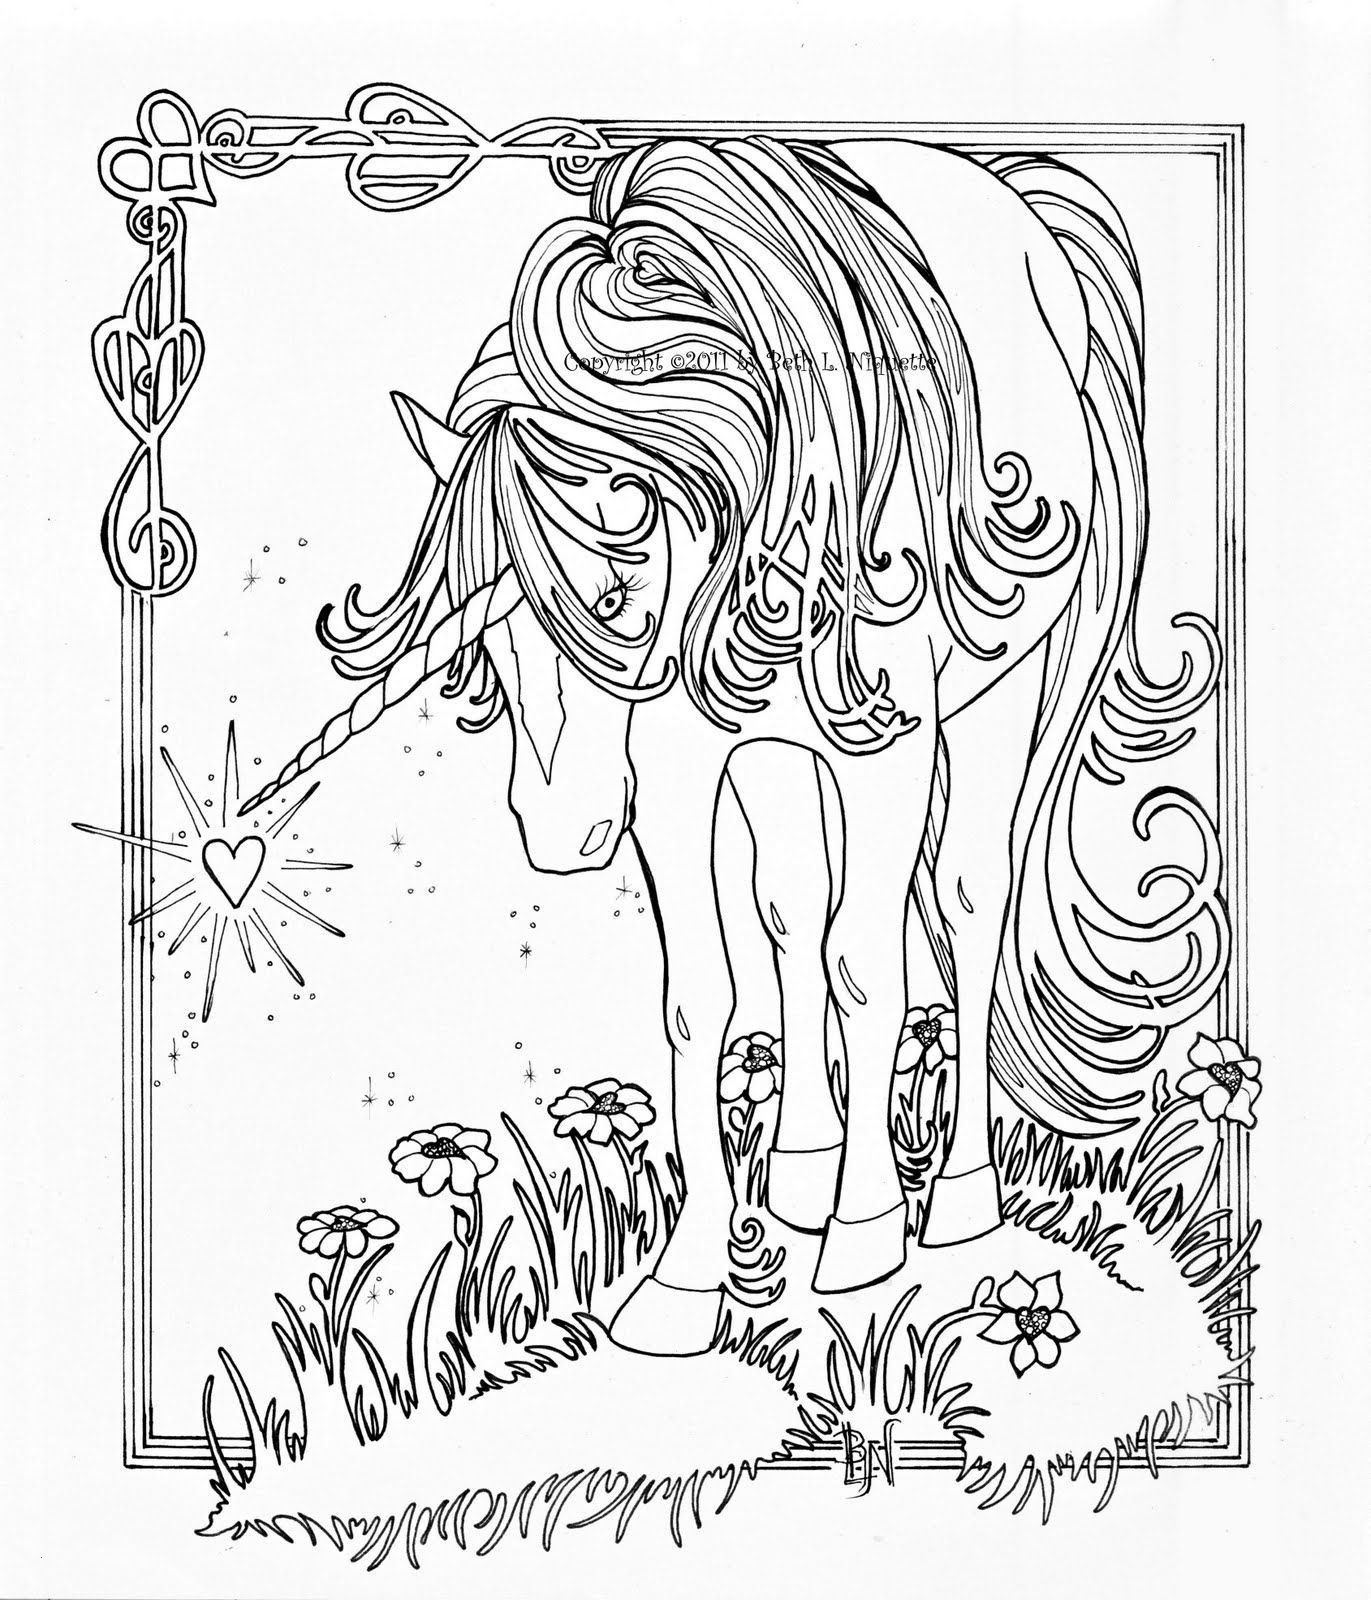 Ausmalbild Mia and Me Einzigartig Mia and Me Coloring Pages Fresh Ausmalbilder Kostenlos Mia and Me Stock